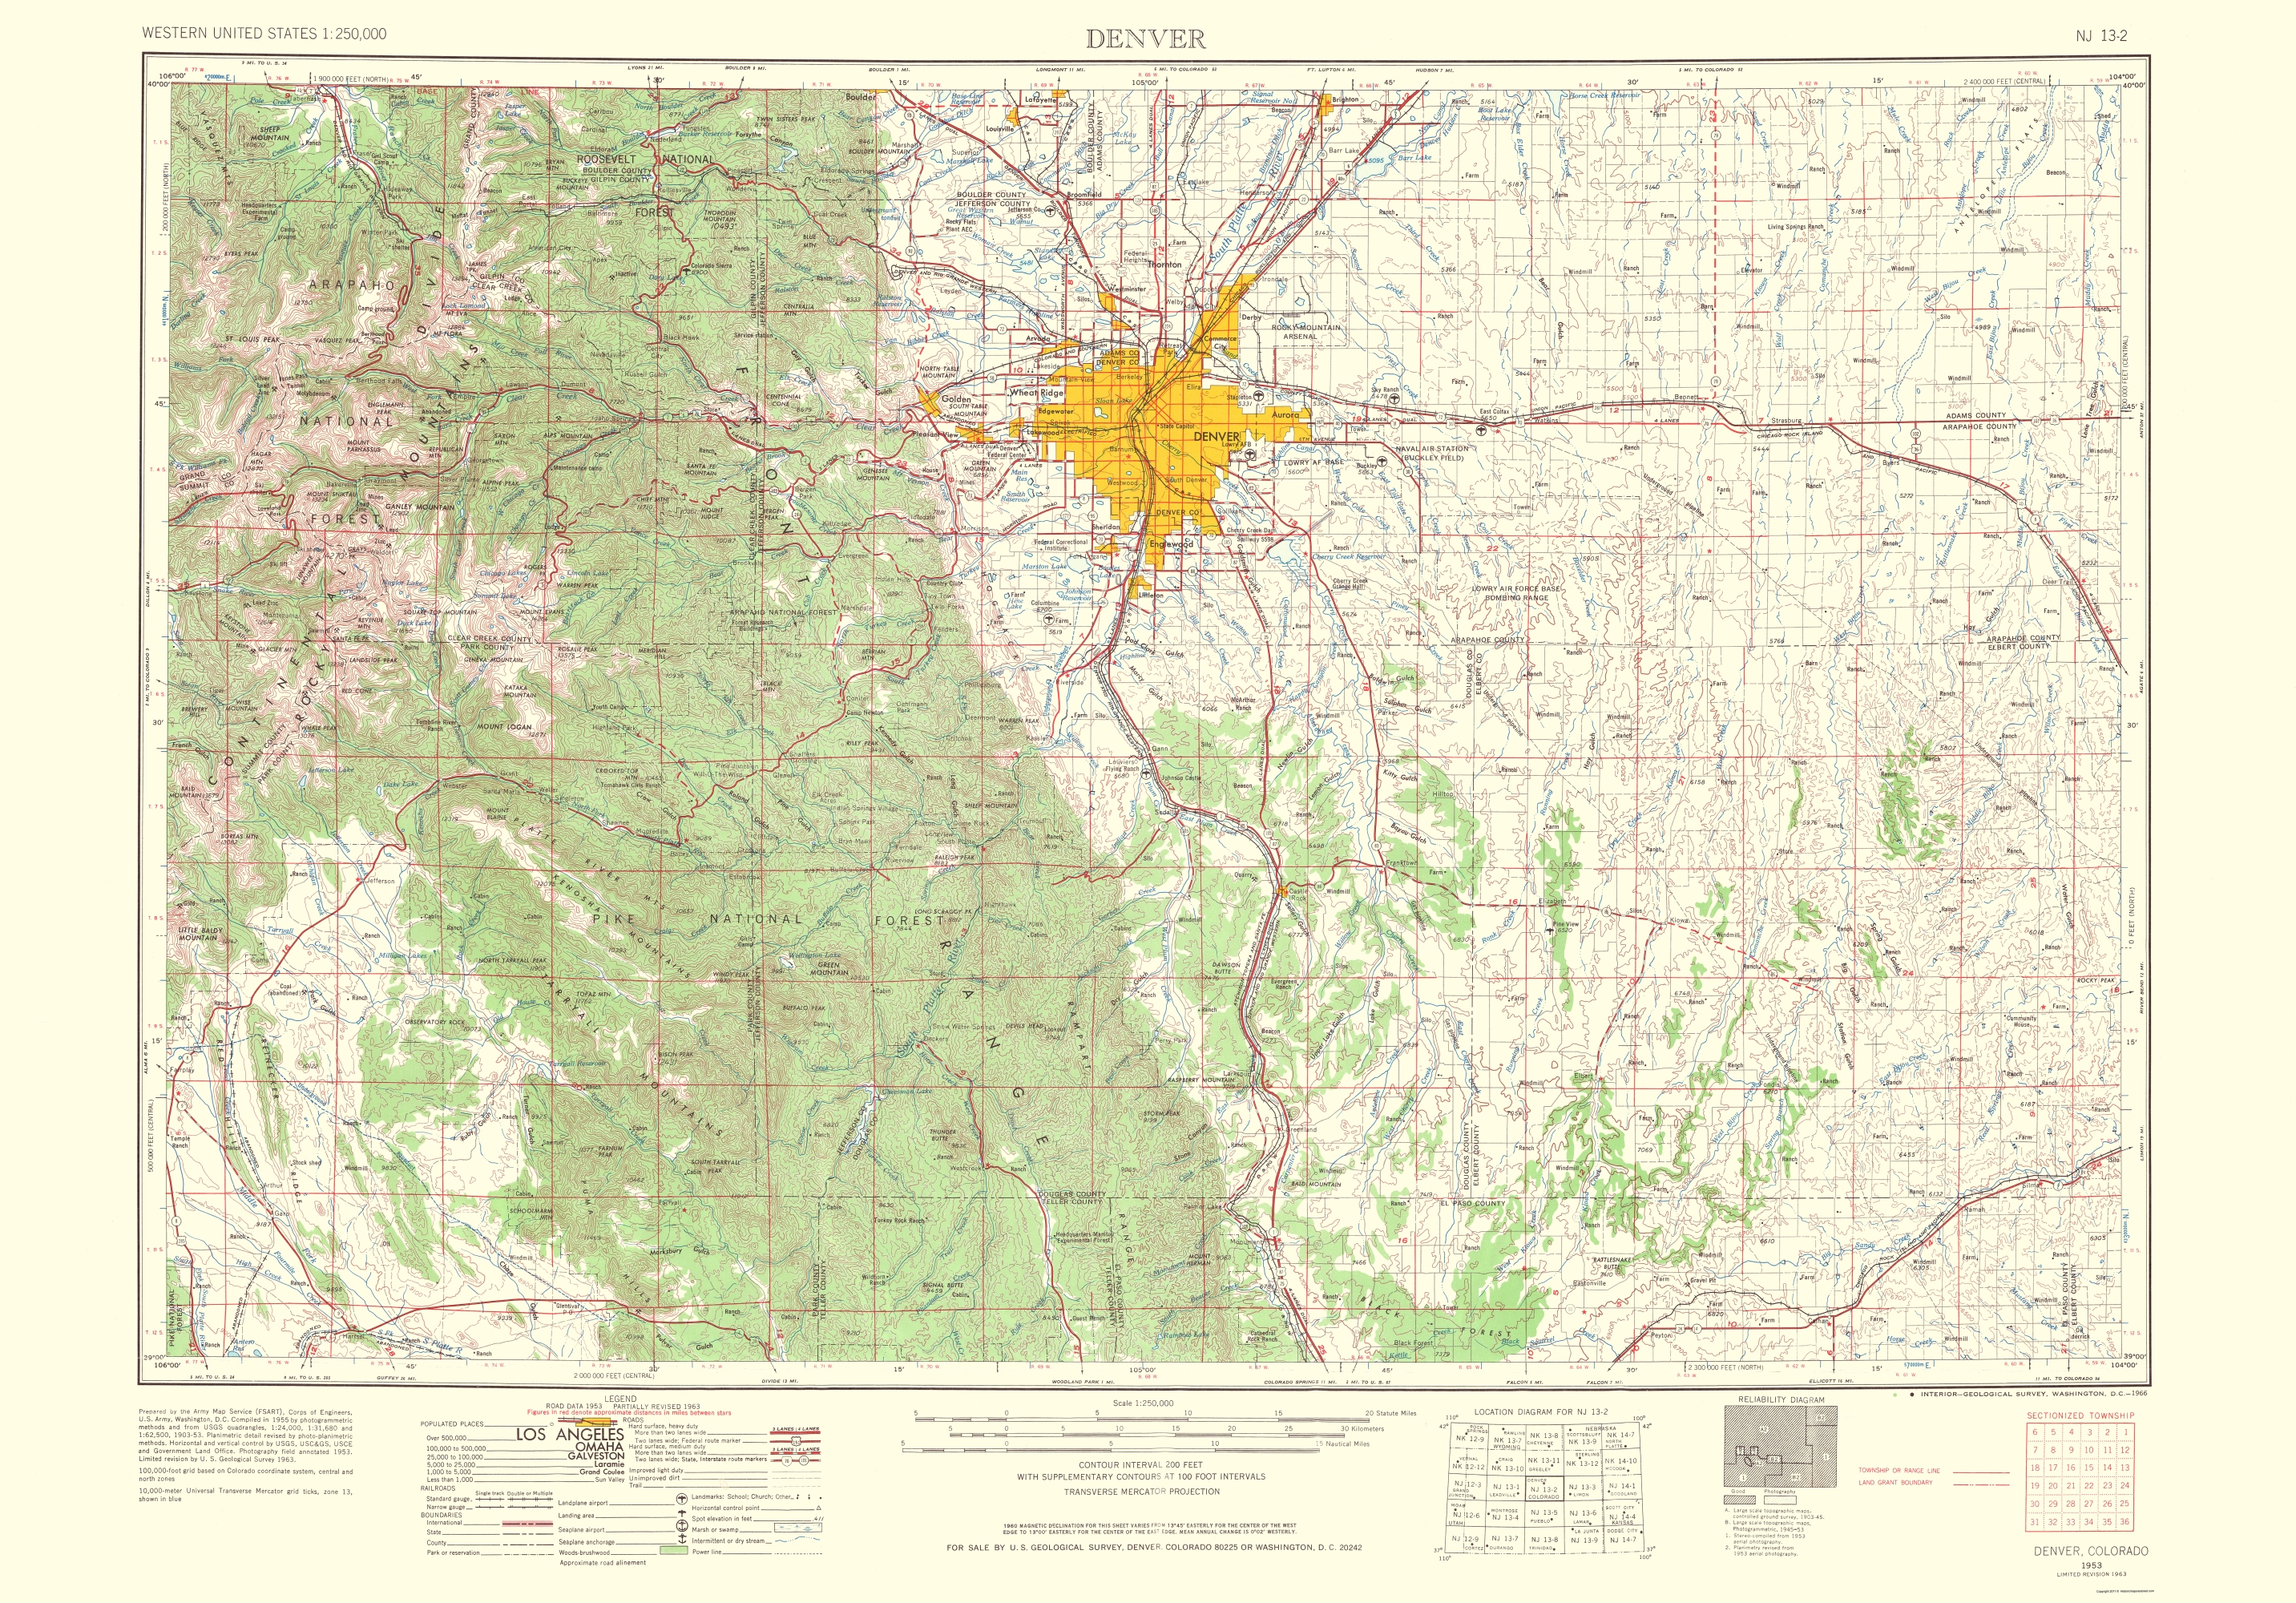 Old Topographical Map - Denver Colorado 1966